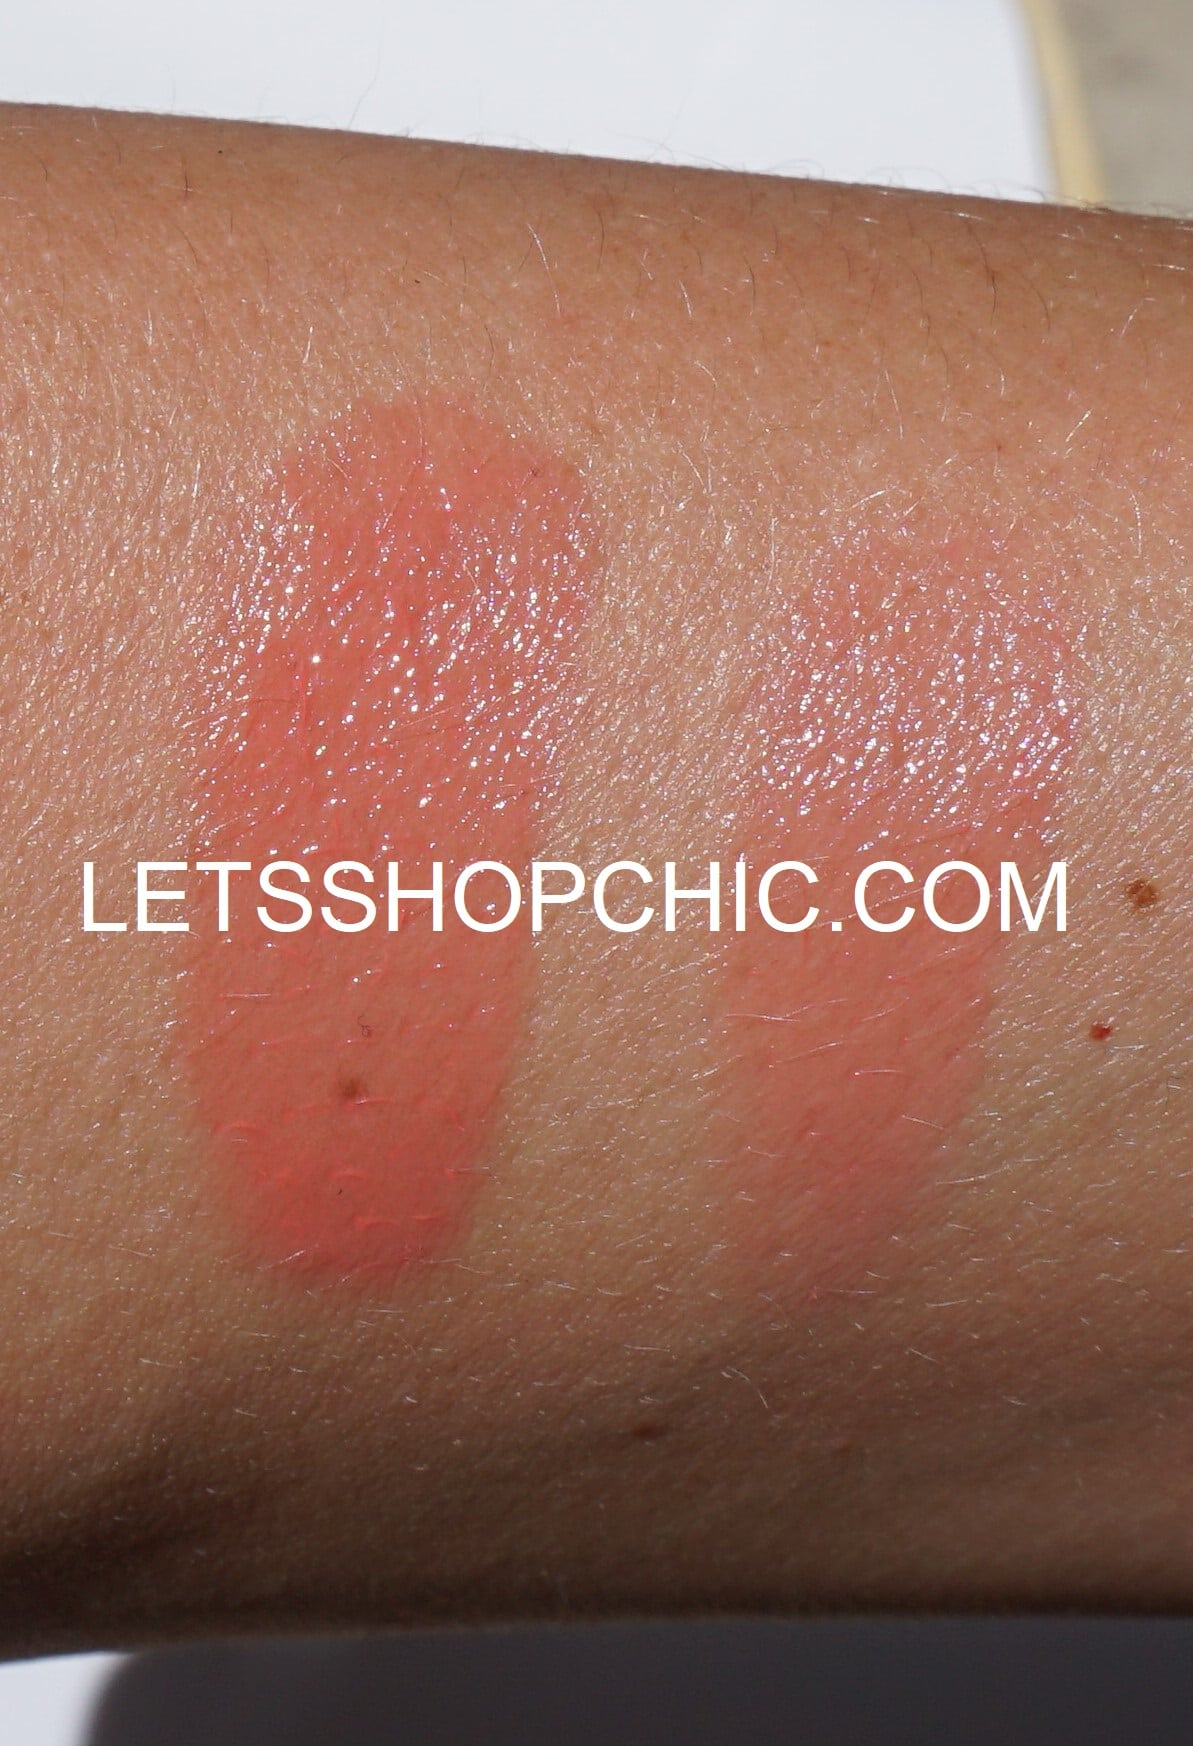 Chanel Rouge Coco Flash Lipstick 74 Flash swatch